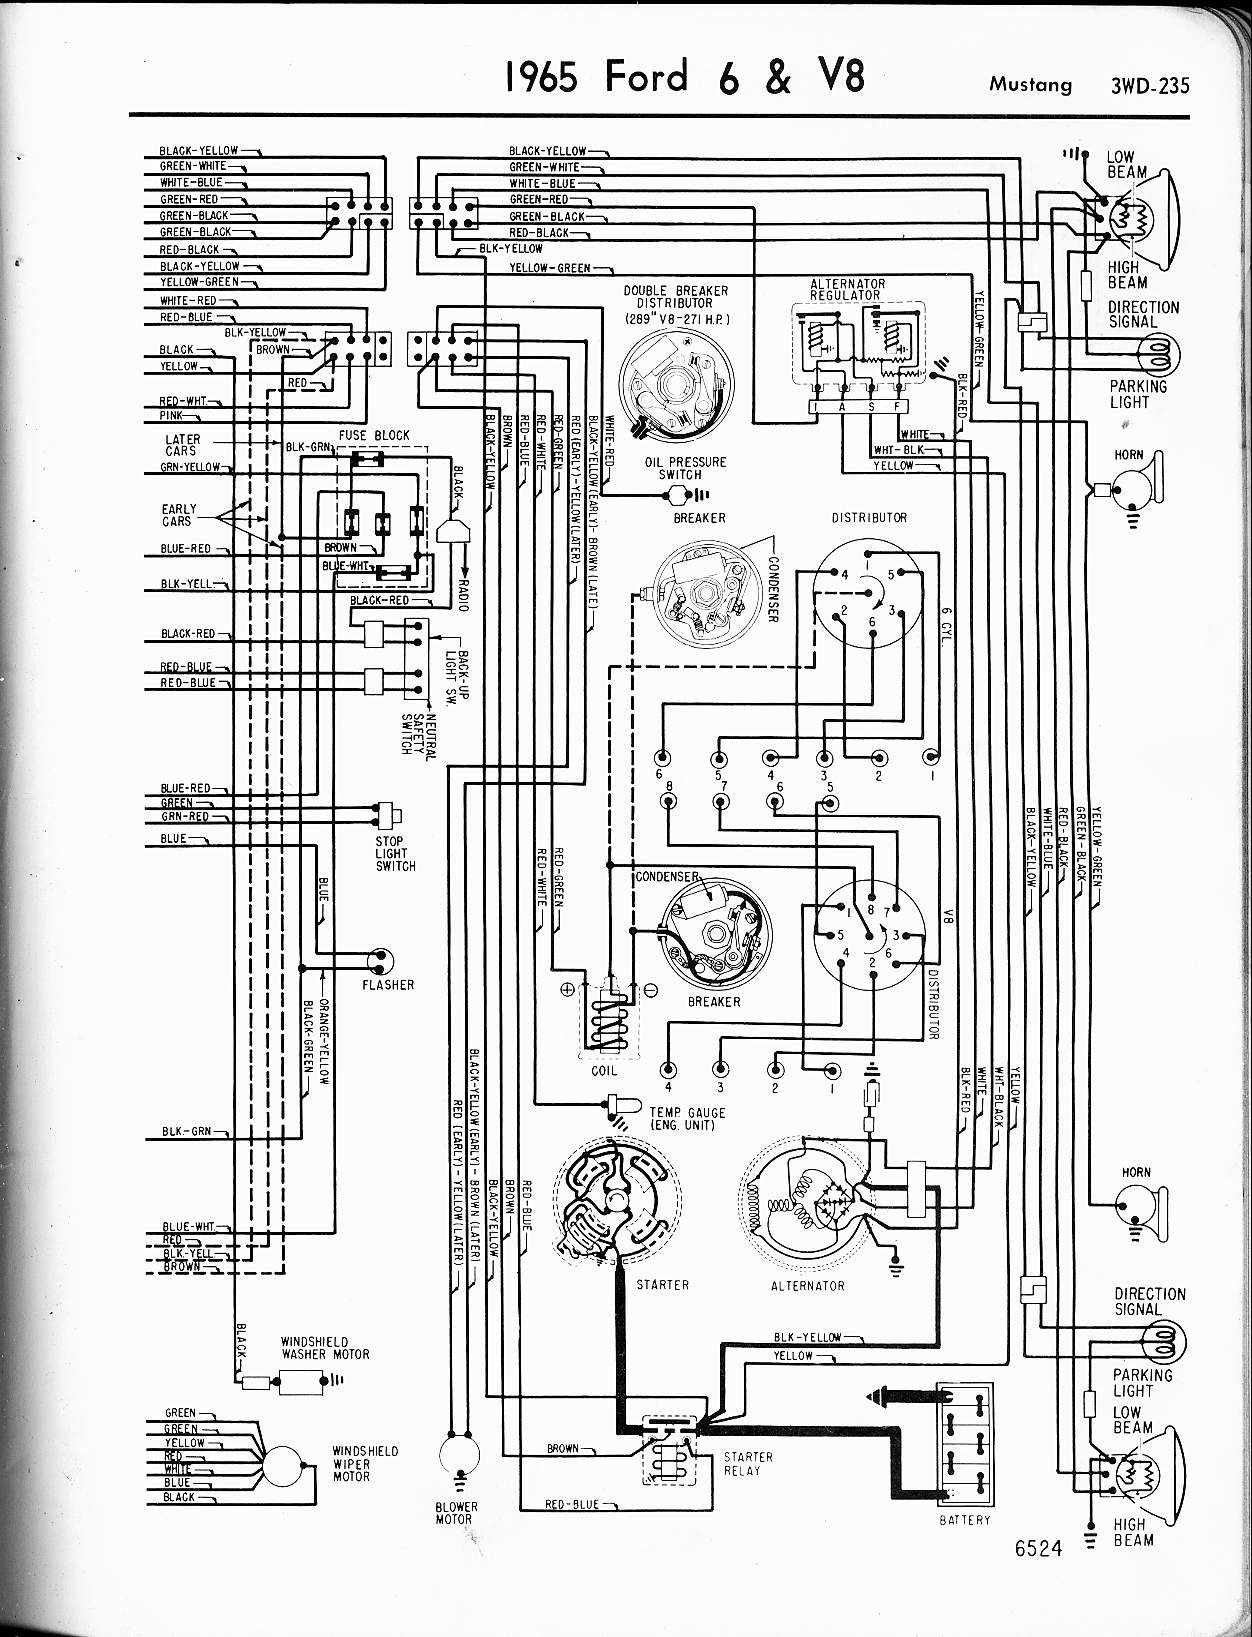 '65 MUSTANG WIRING DIAGRAM 2